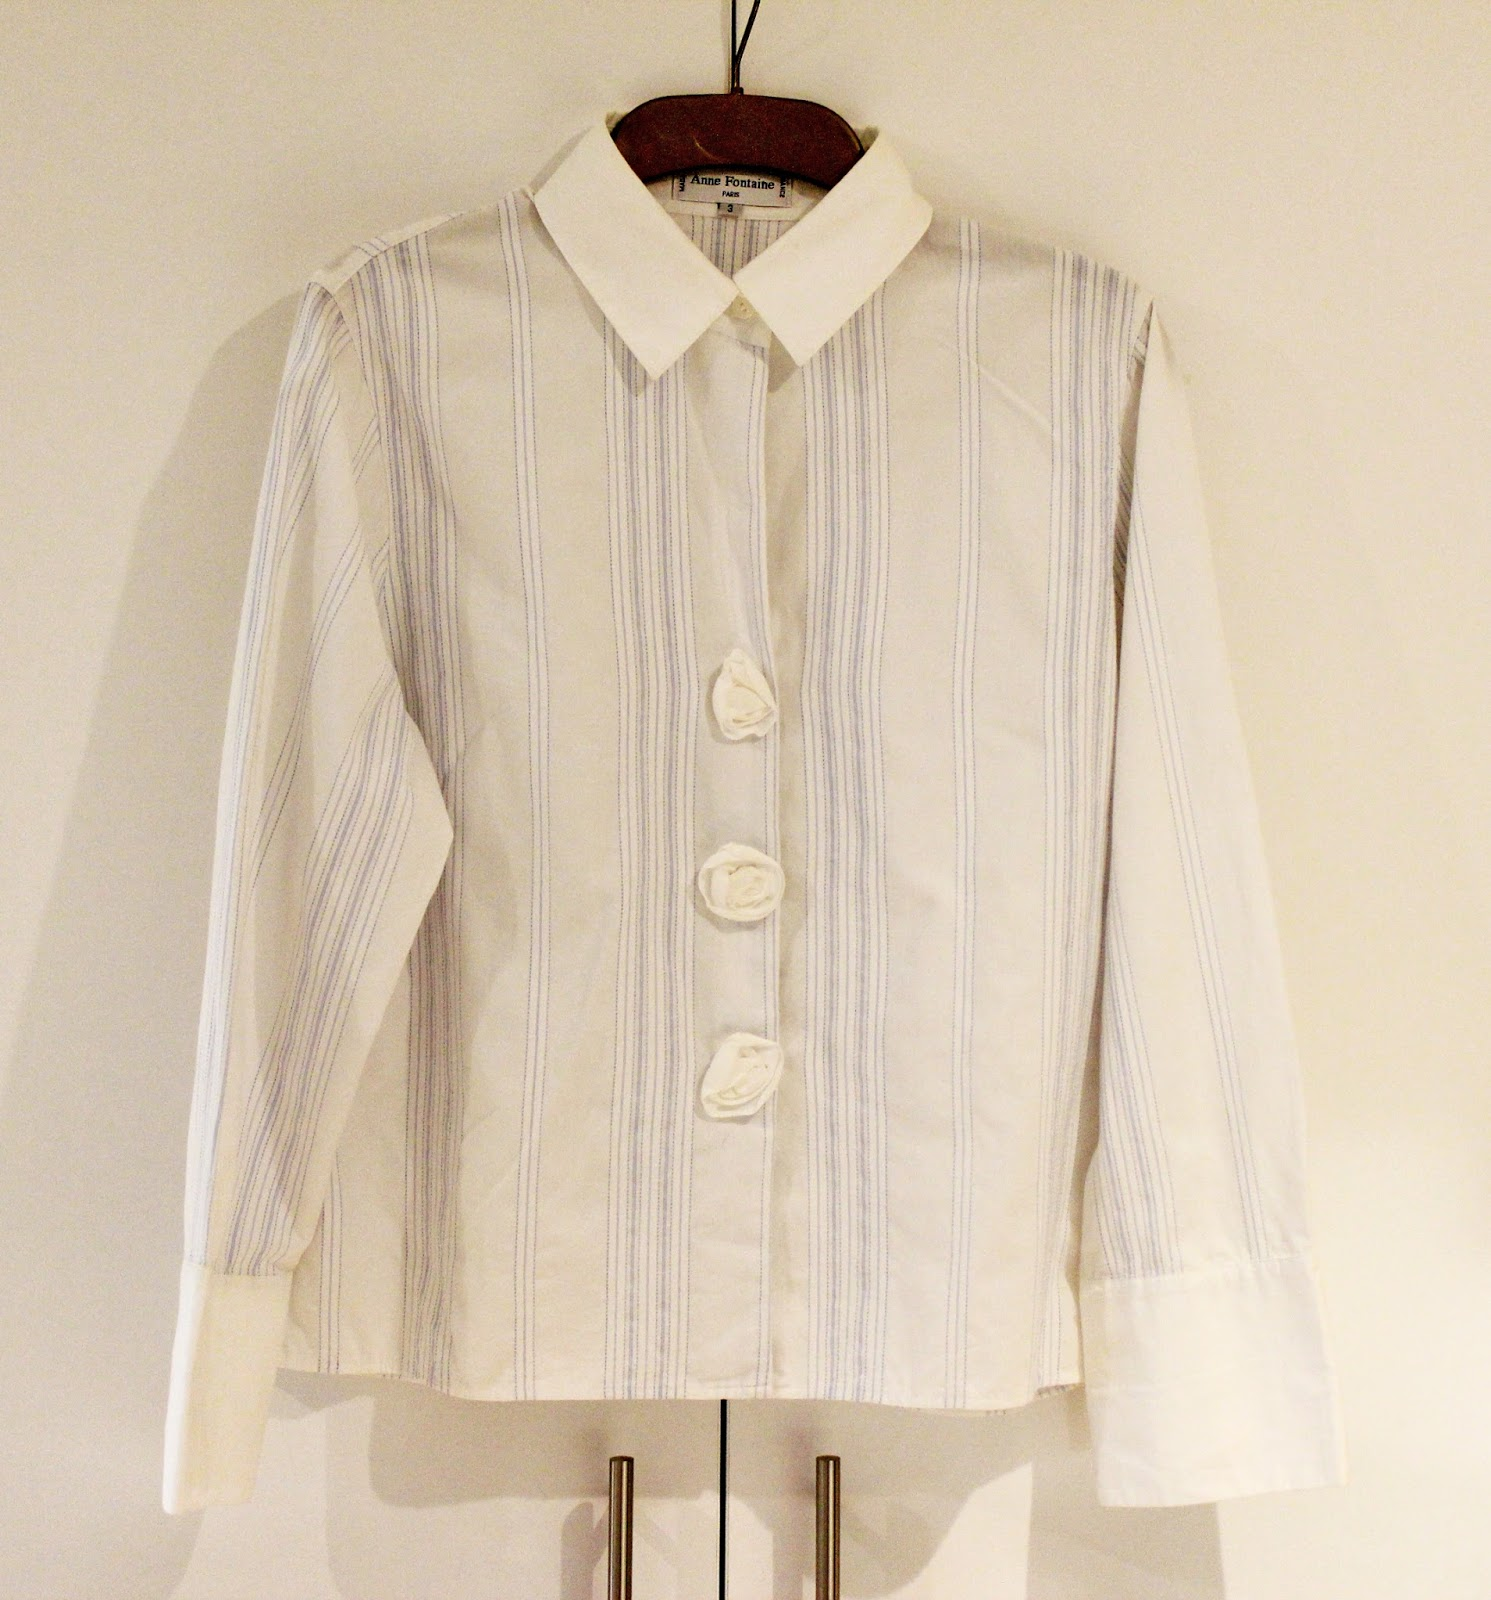 Anne Fontaine White Cotton Blouse - £35